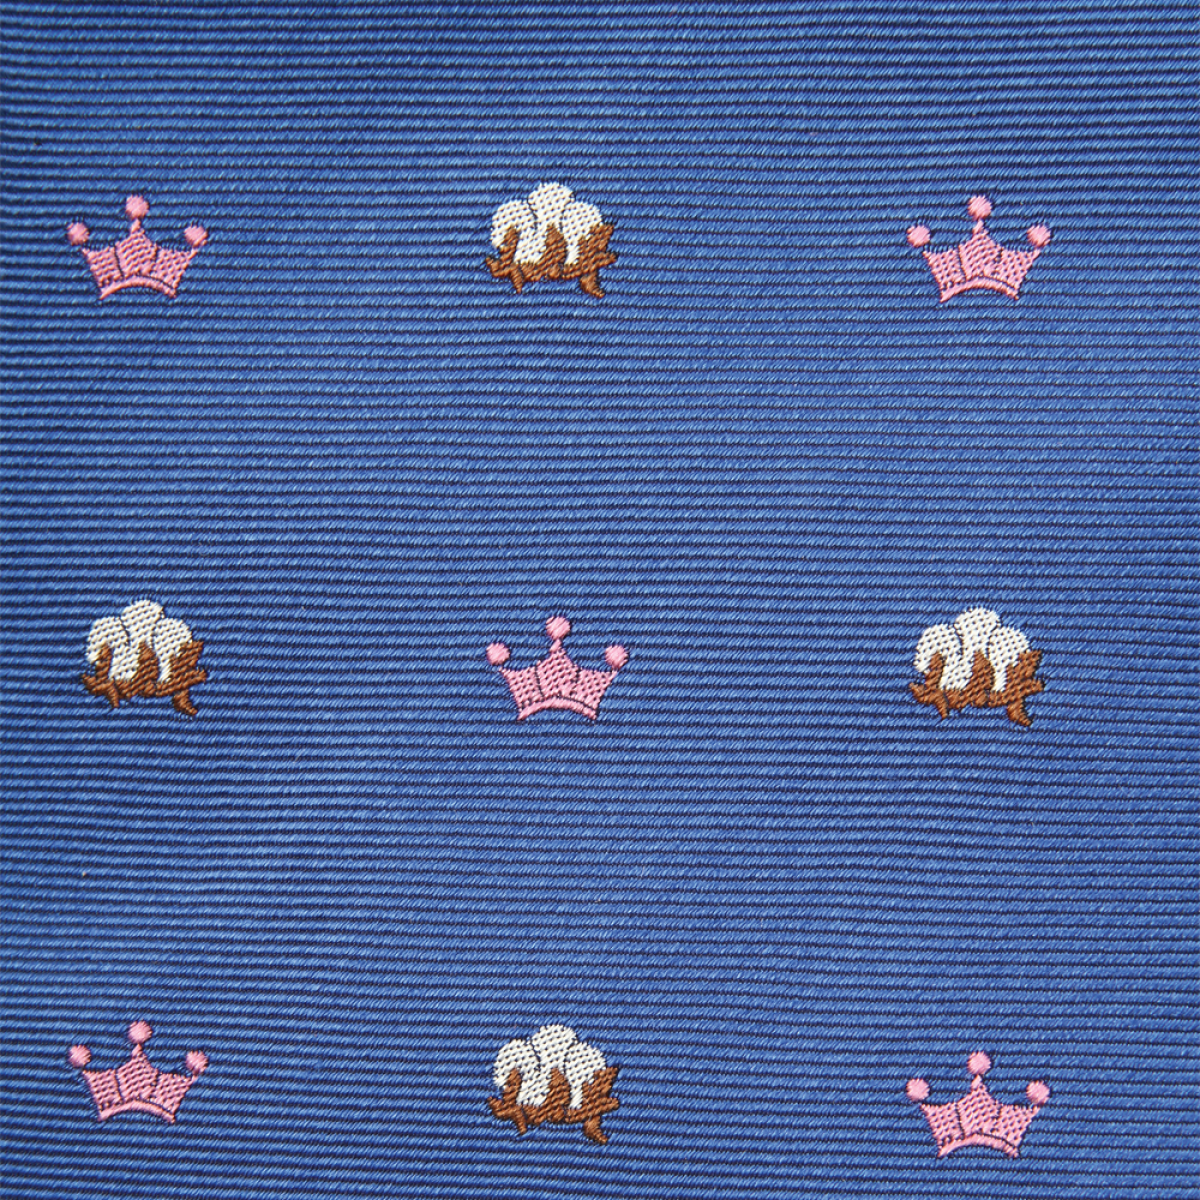 Woven King Cotton Gent - Blue